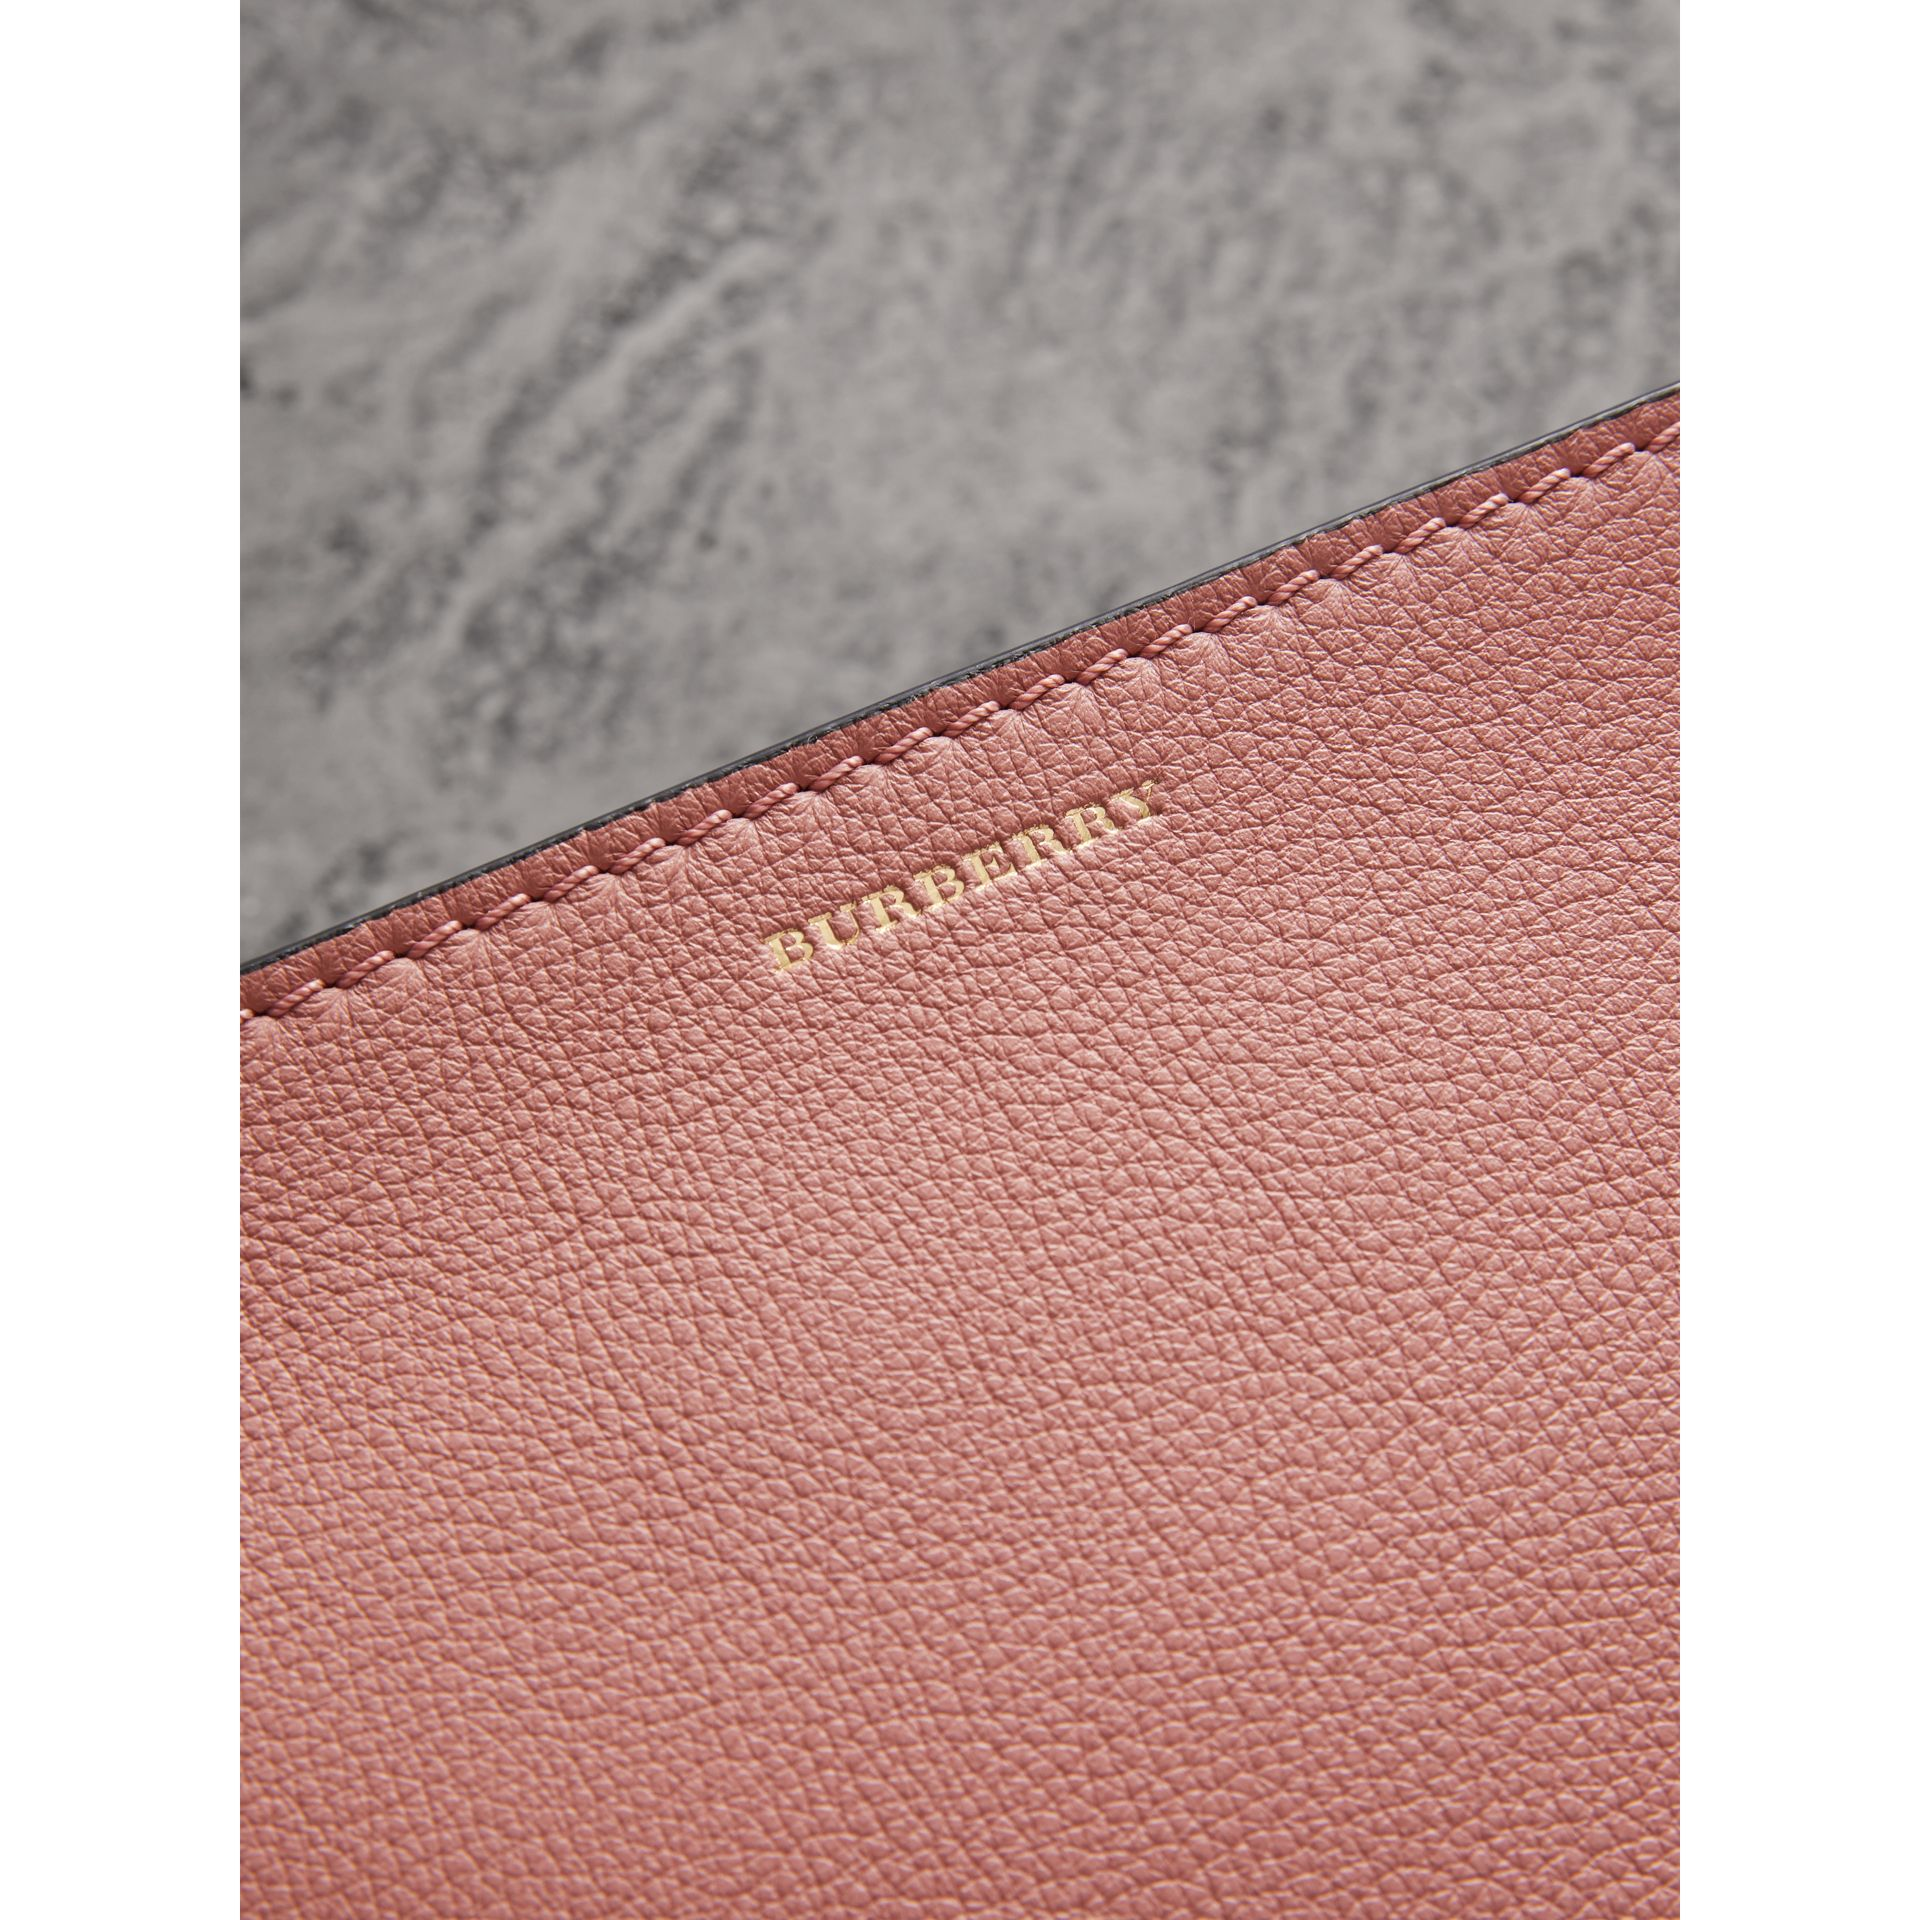 Medium Tri-tone Leather Clutch in Dusty Rose/limestone - Women | Burberry - gallery image 1